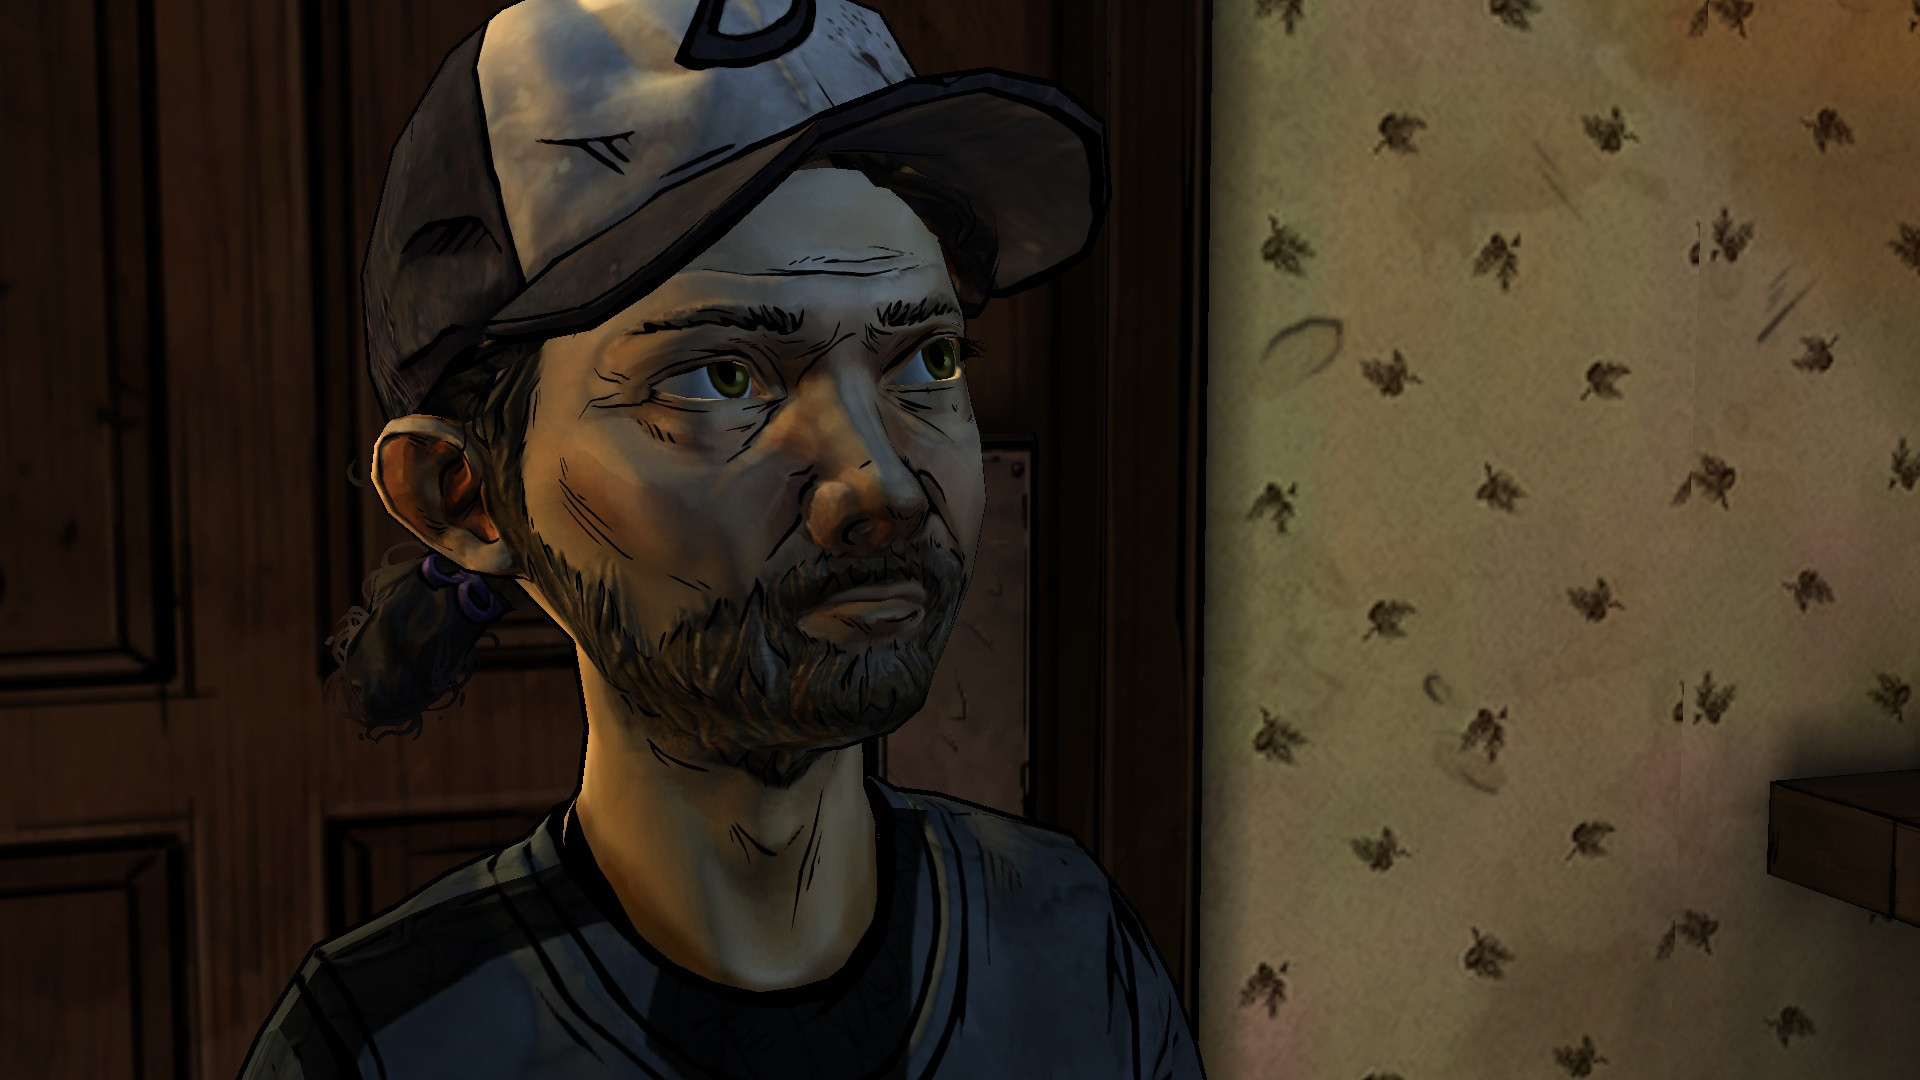 Found this one the walking dead wiki. Someone's been busy model swapping.